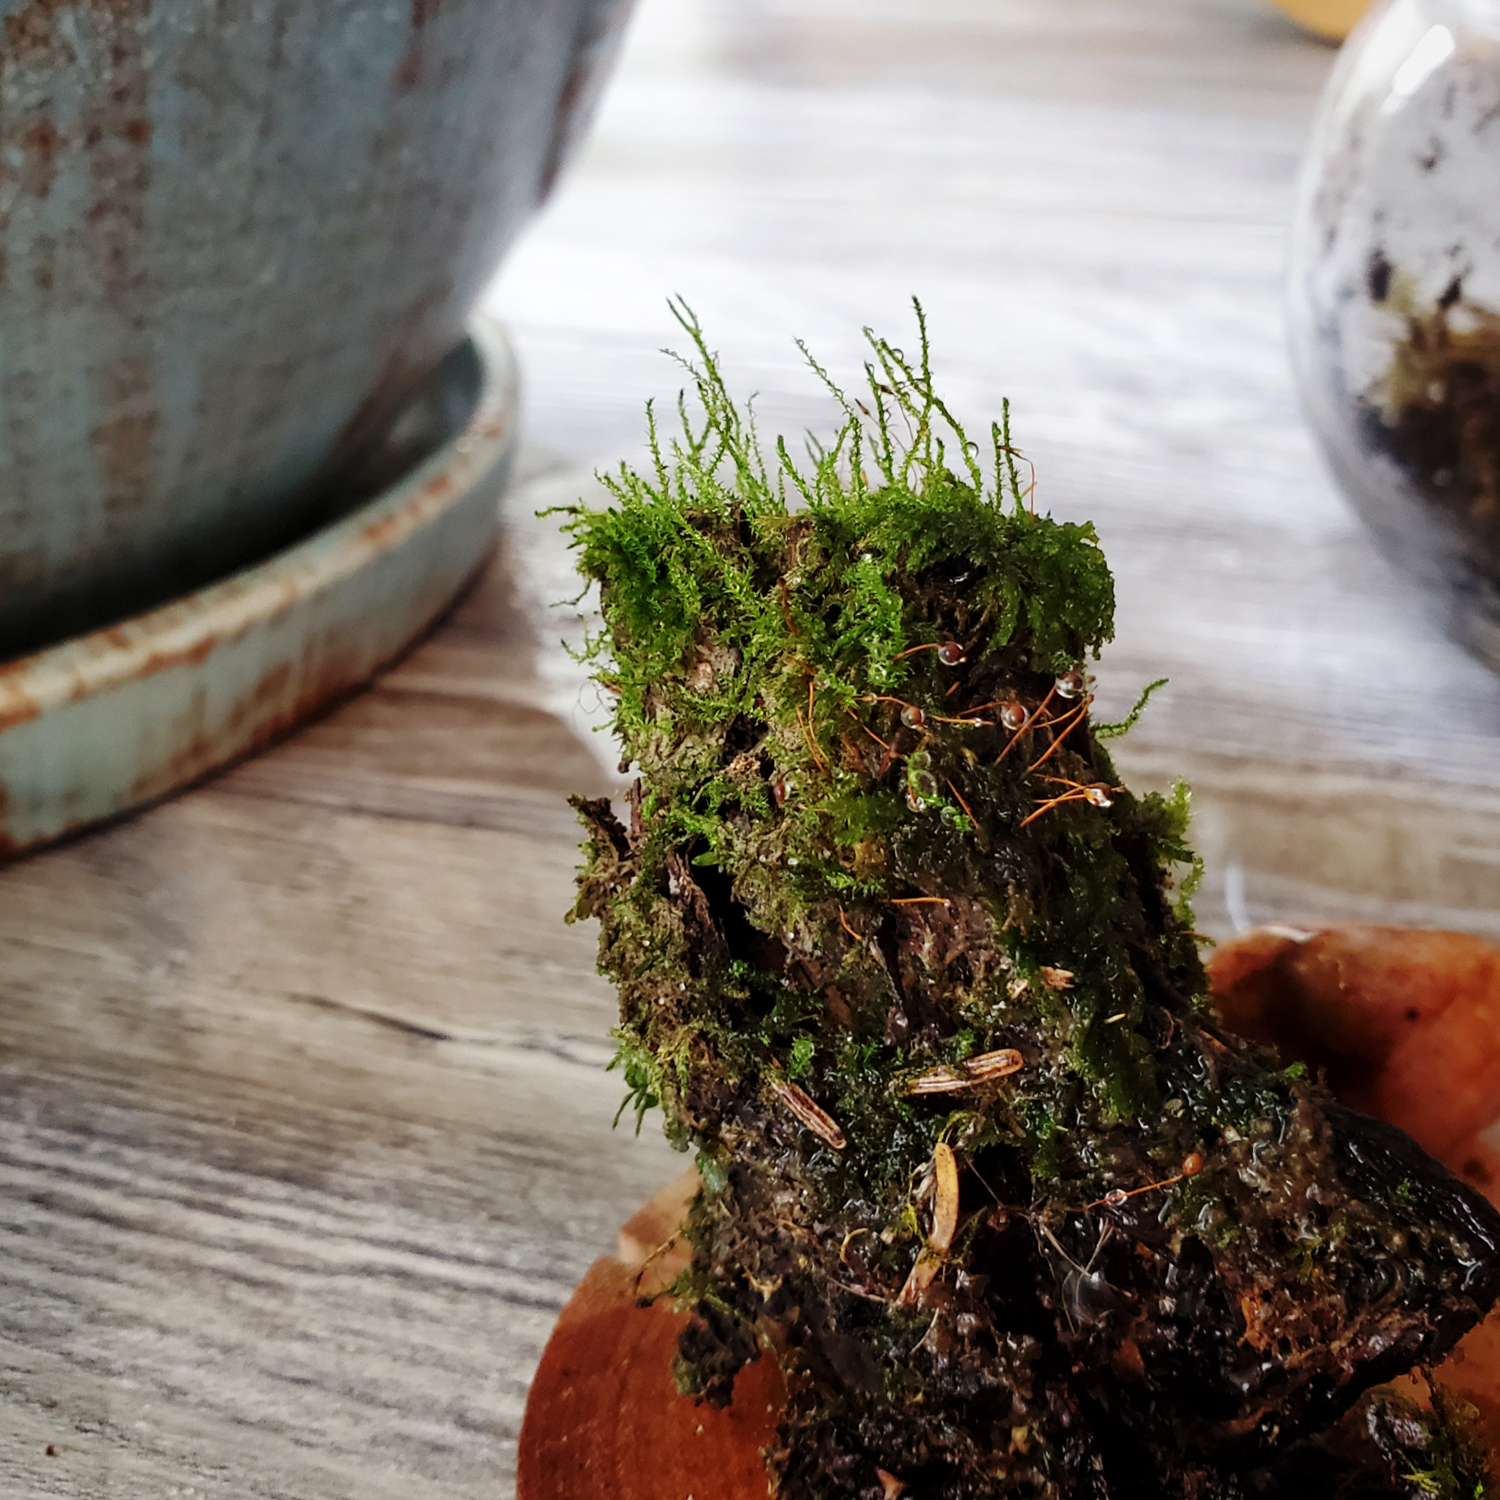 A log piece that is covered in different mosses